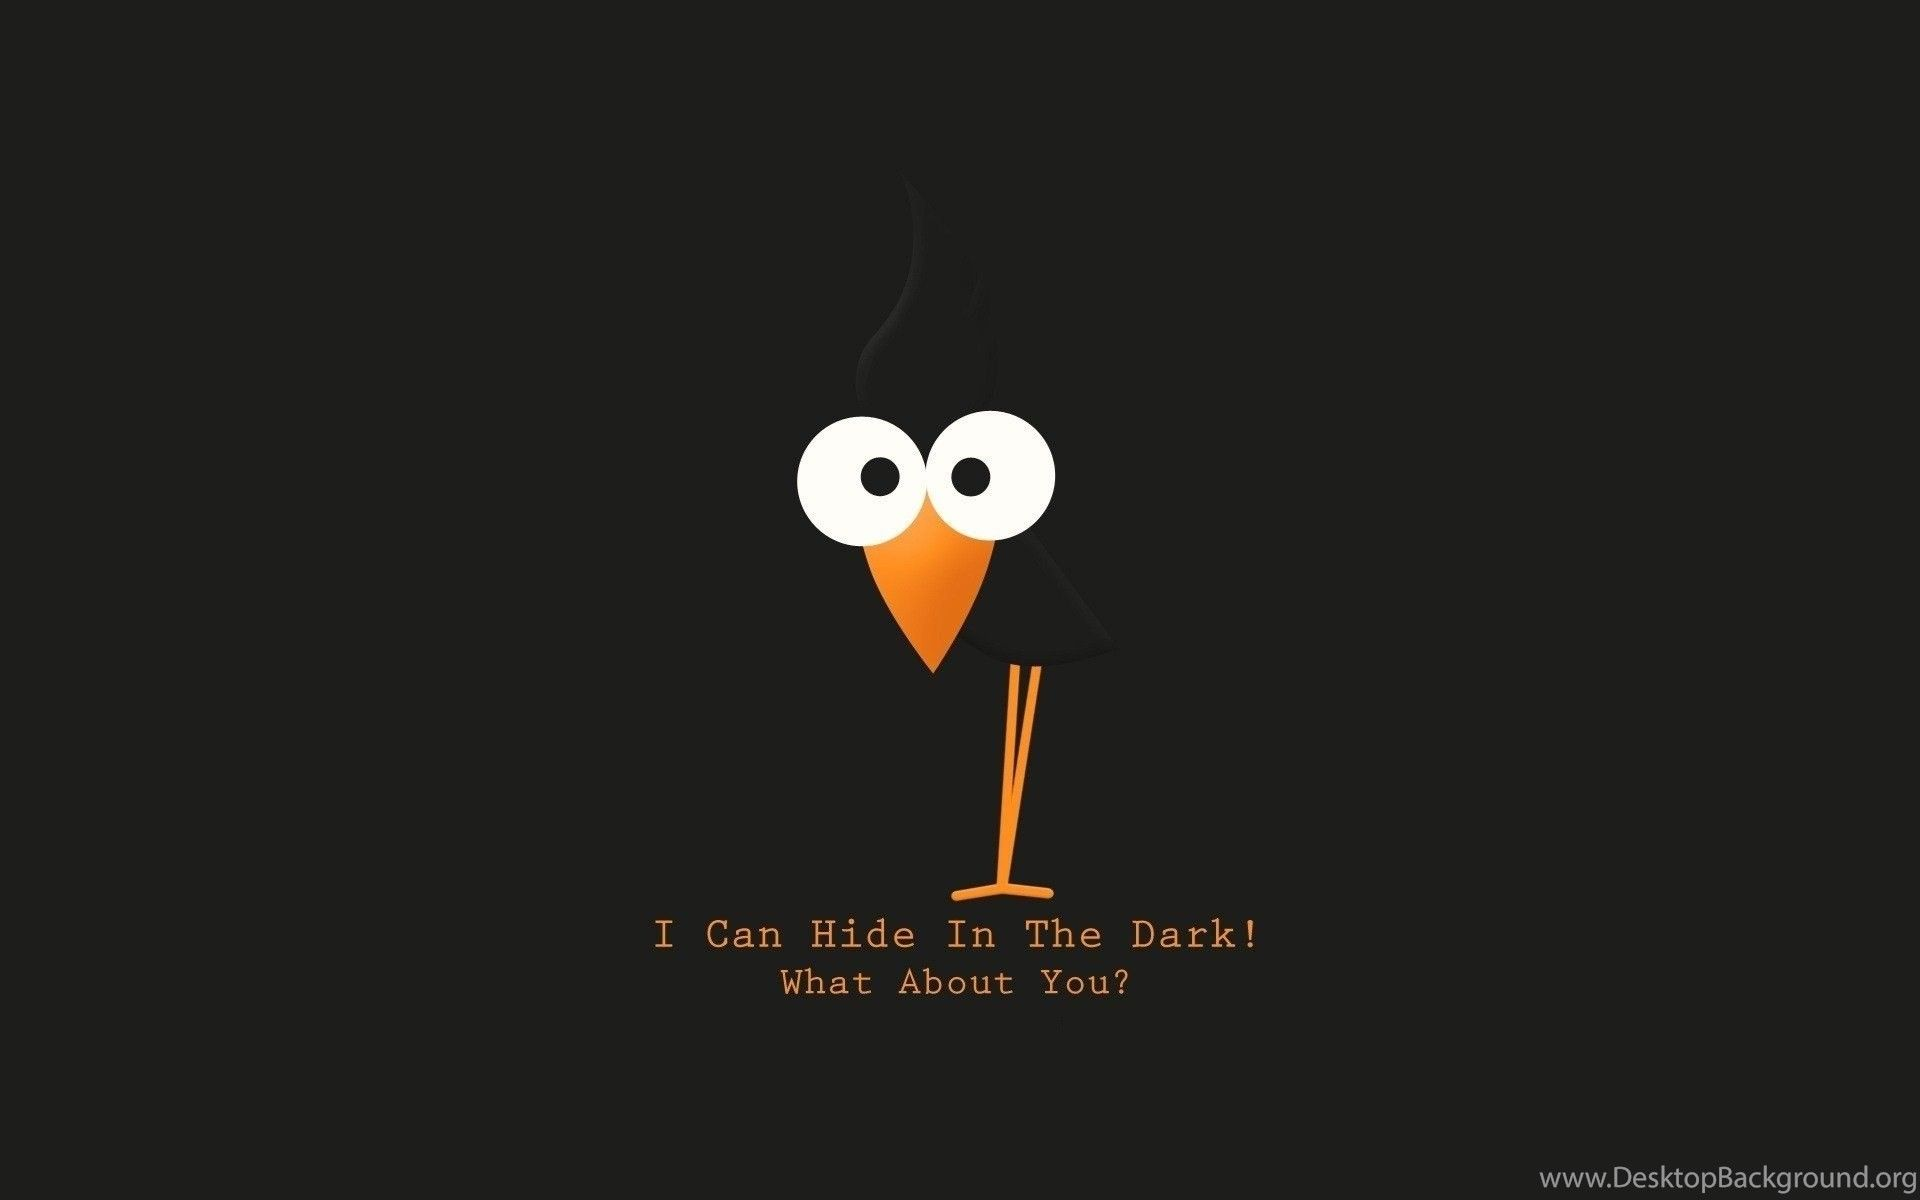 Funny Wallpaper For Laptop Posted By Michelle Peltier